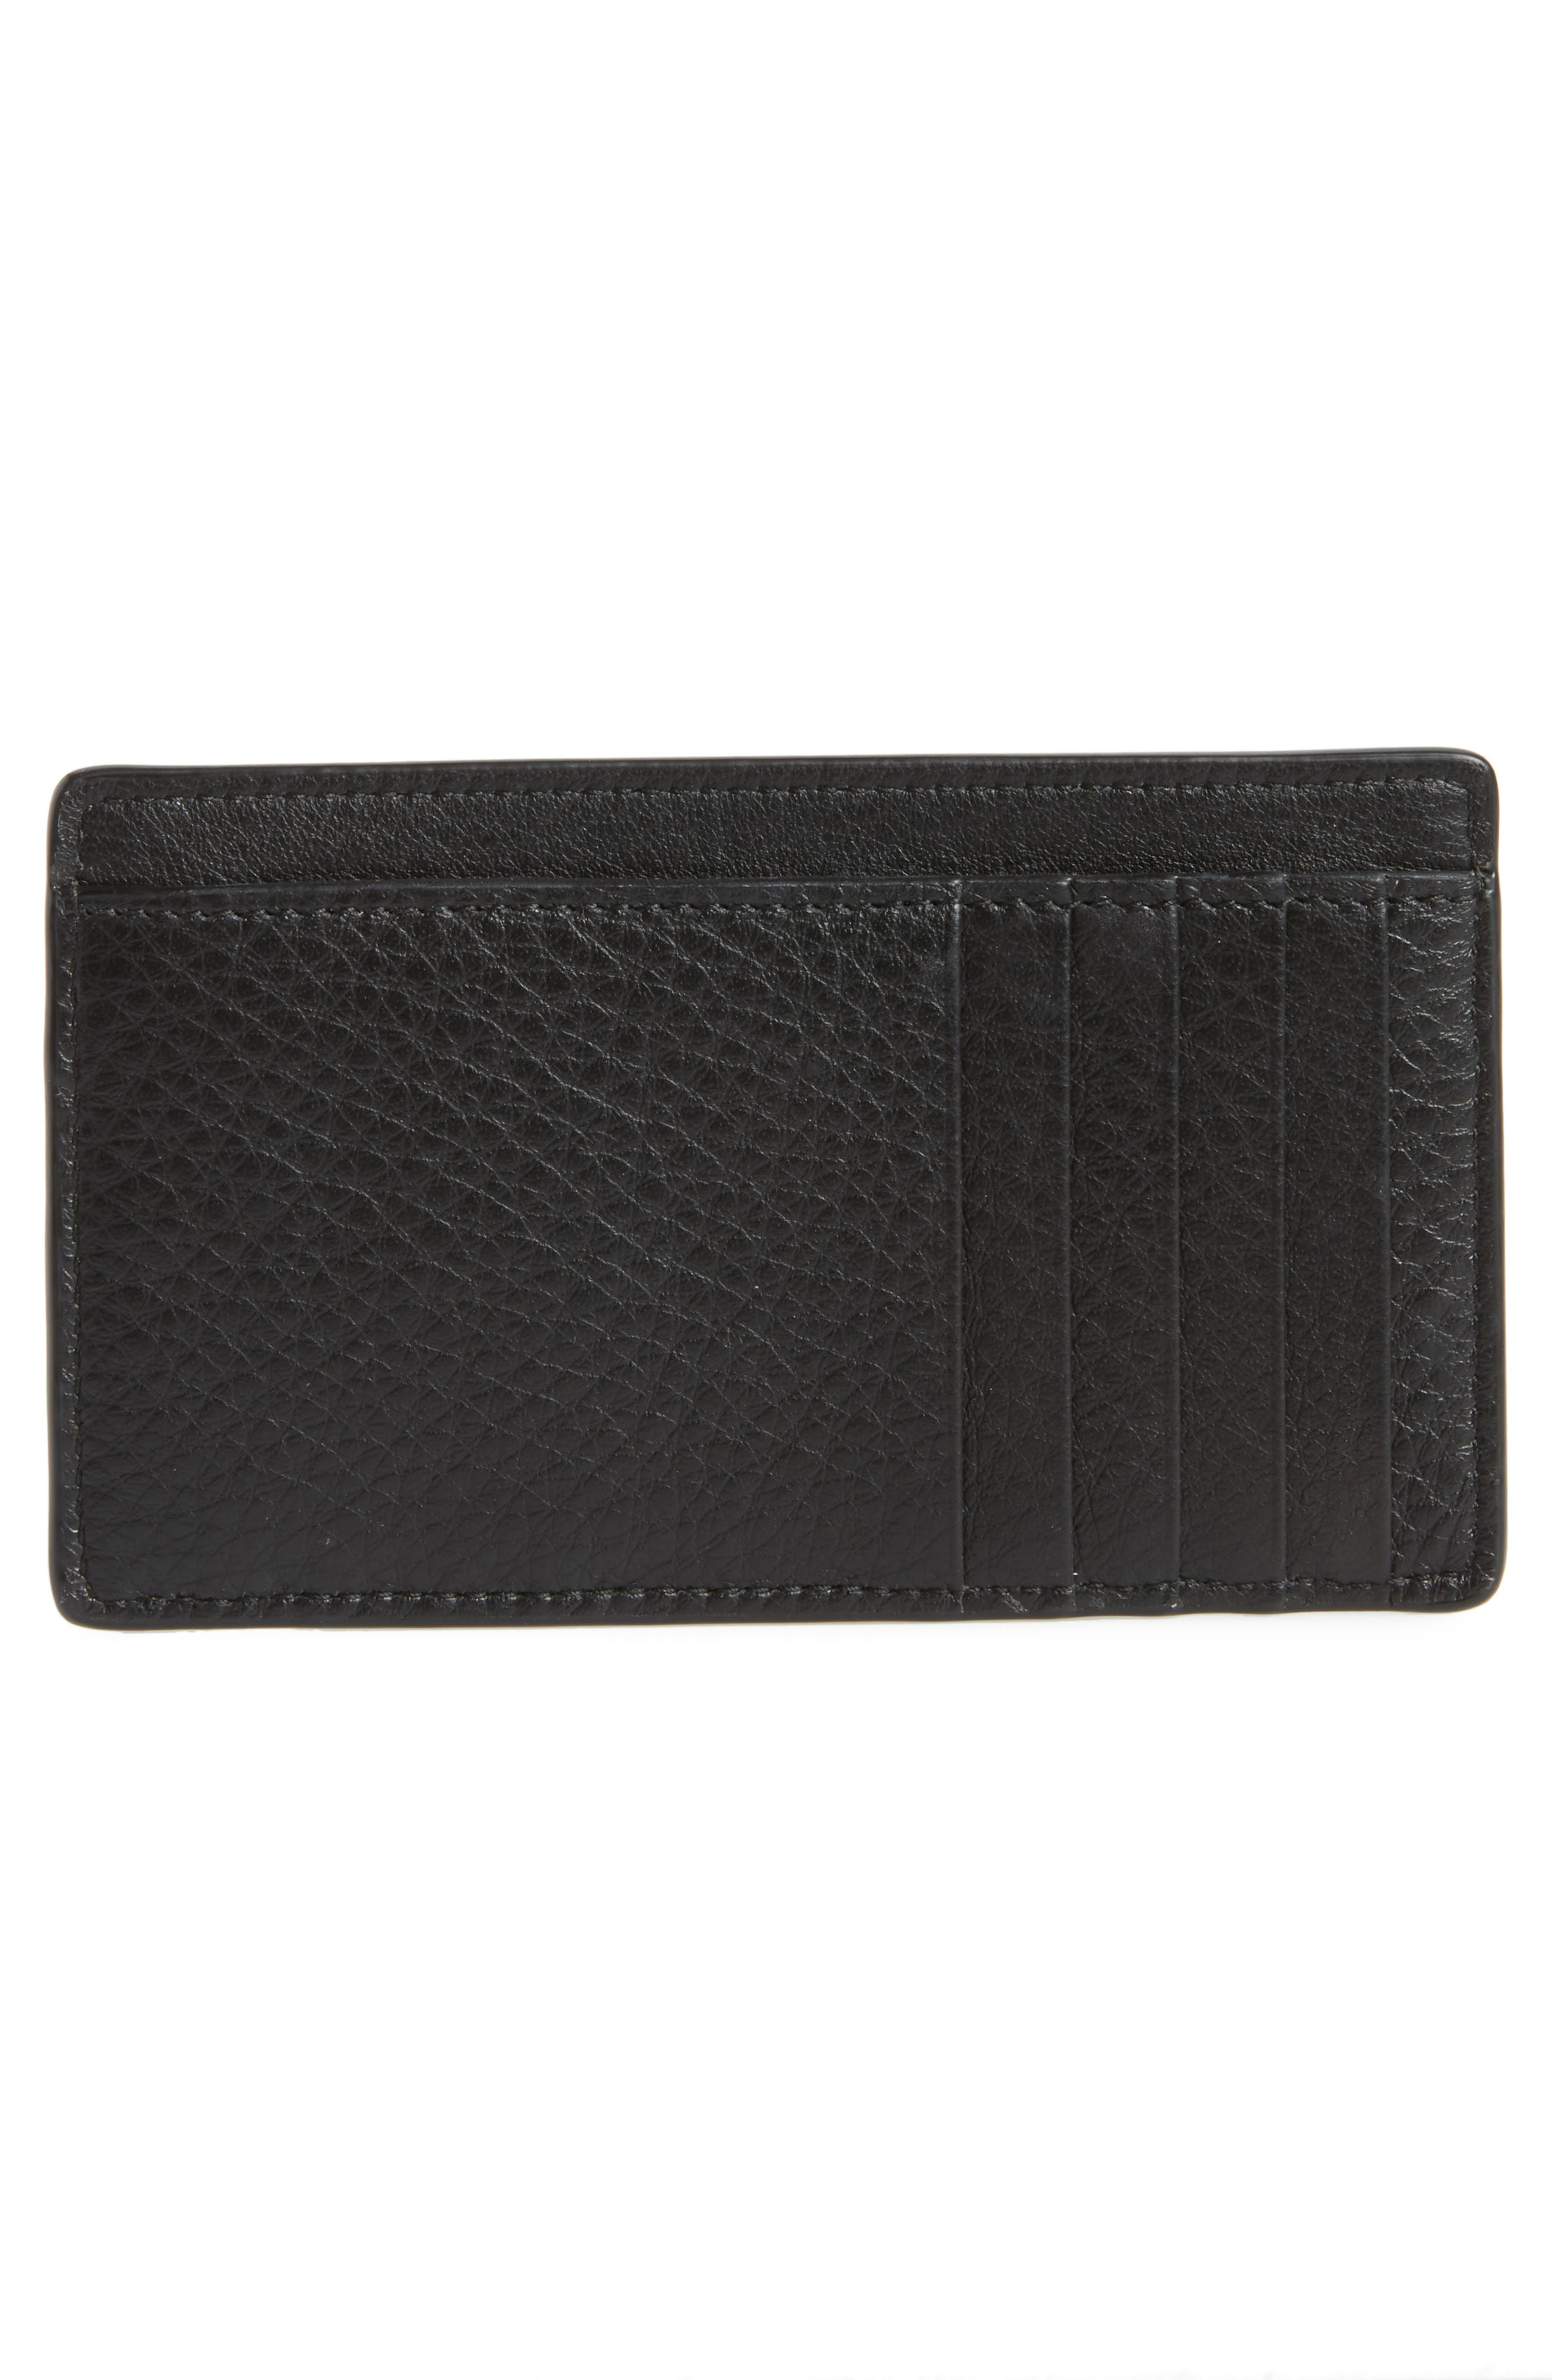 Everyday Leather Card Case,                             Alternate thumbnail 2, color,                             NOIR/ BLANC